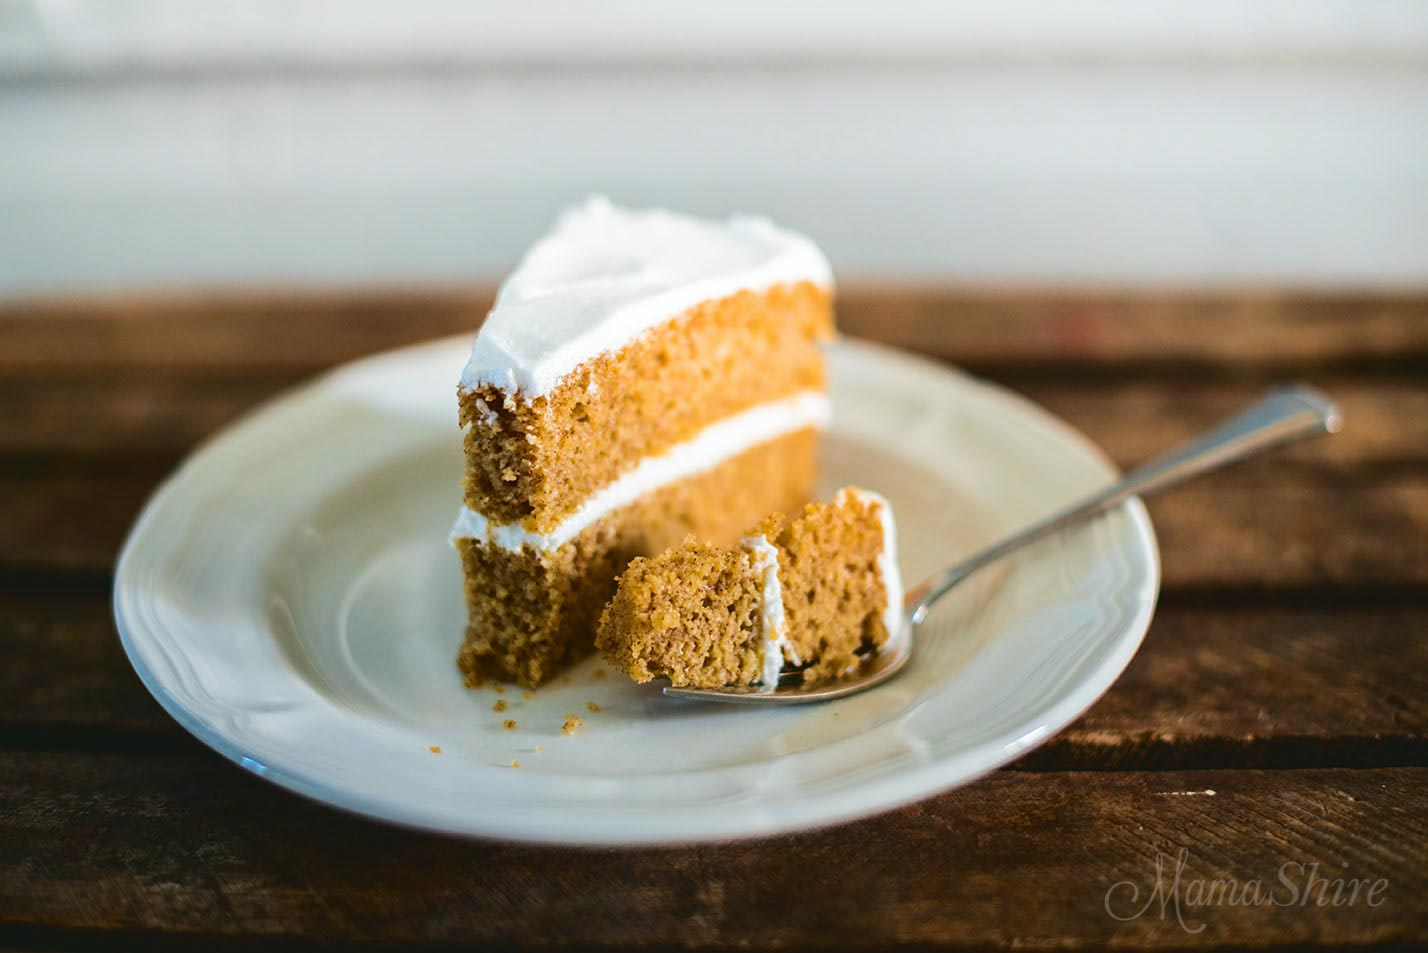 Spice Cake - Gluten-Free Recipe by MamaShire